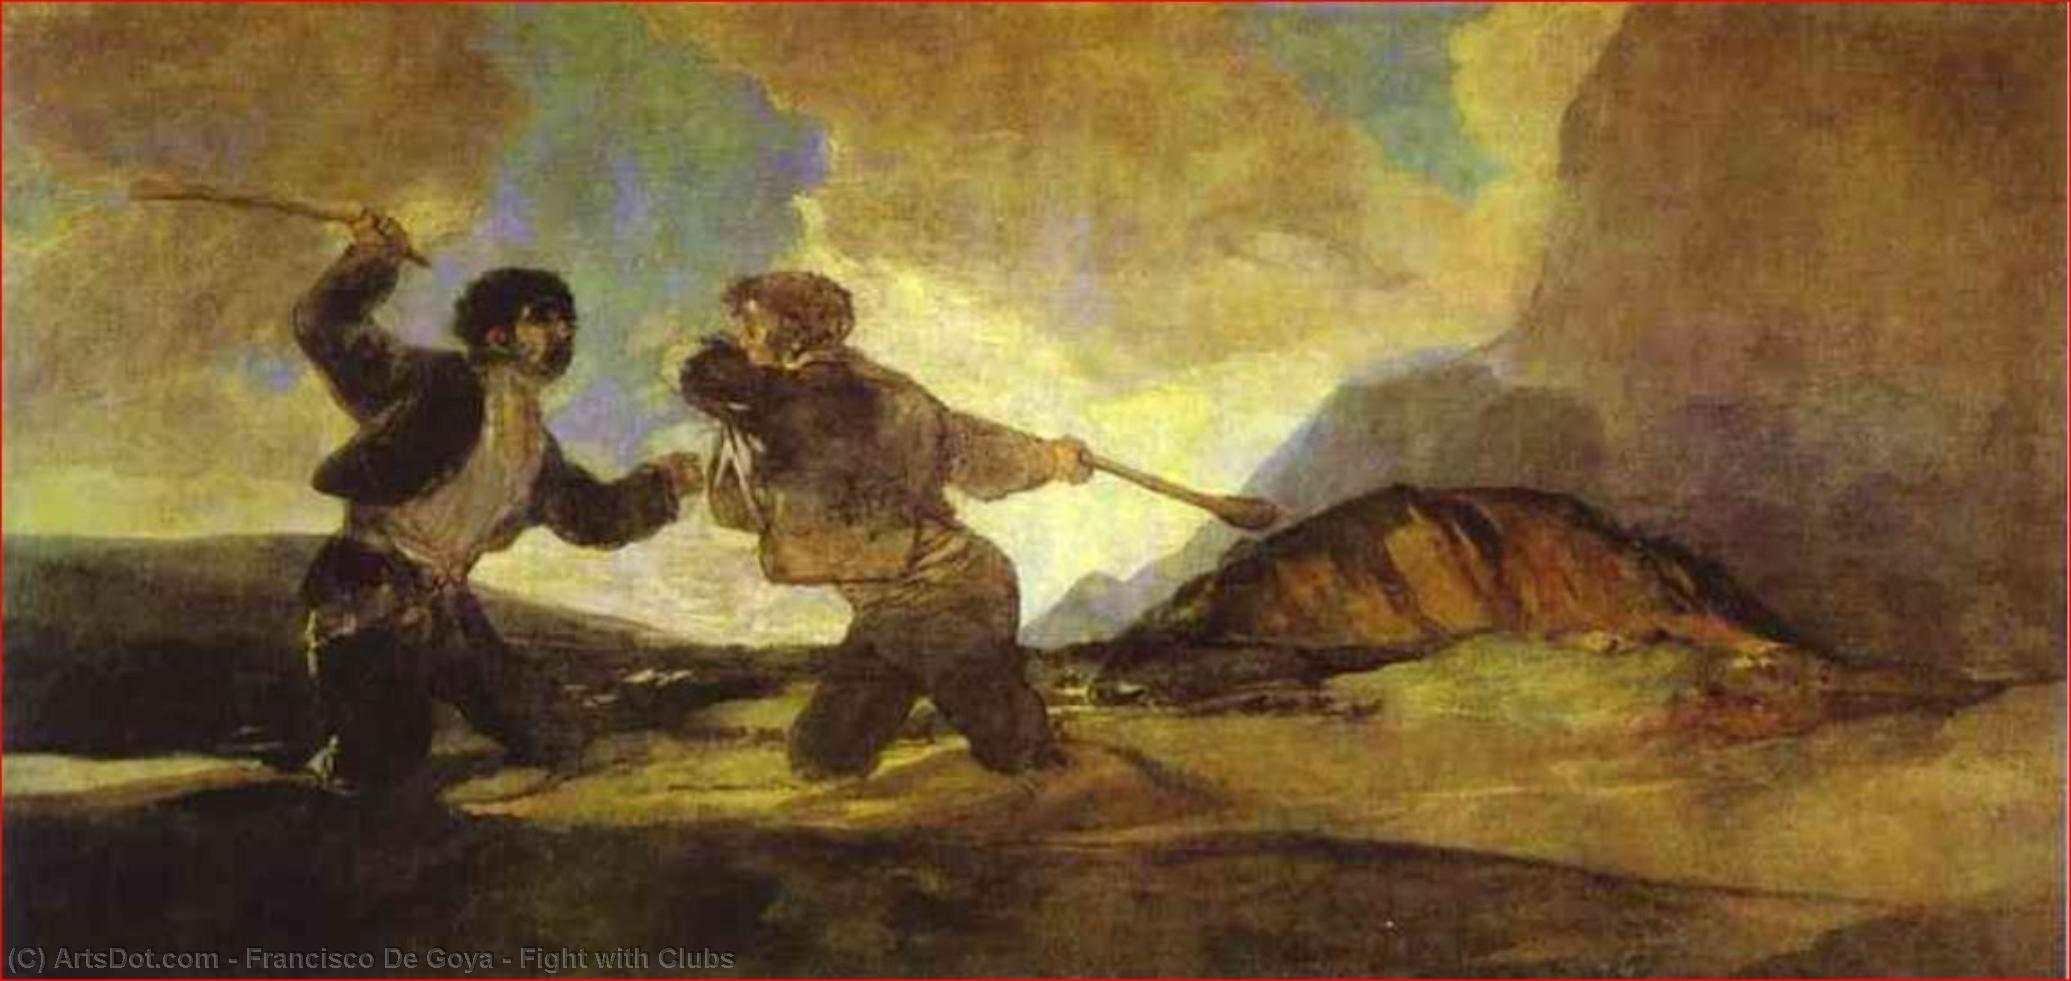 Wikioo.org - The Encyclopedia of Fine Arts - Painting, Artwork by Francisco De Goya - Fight with Clubs